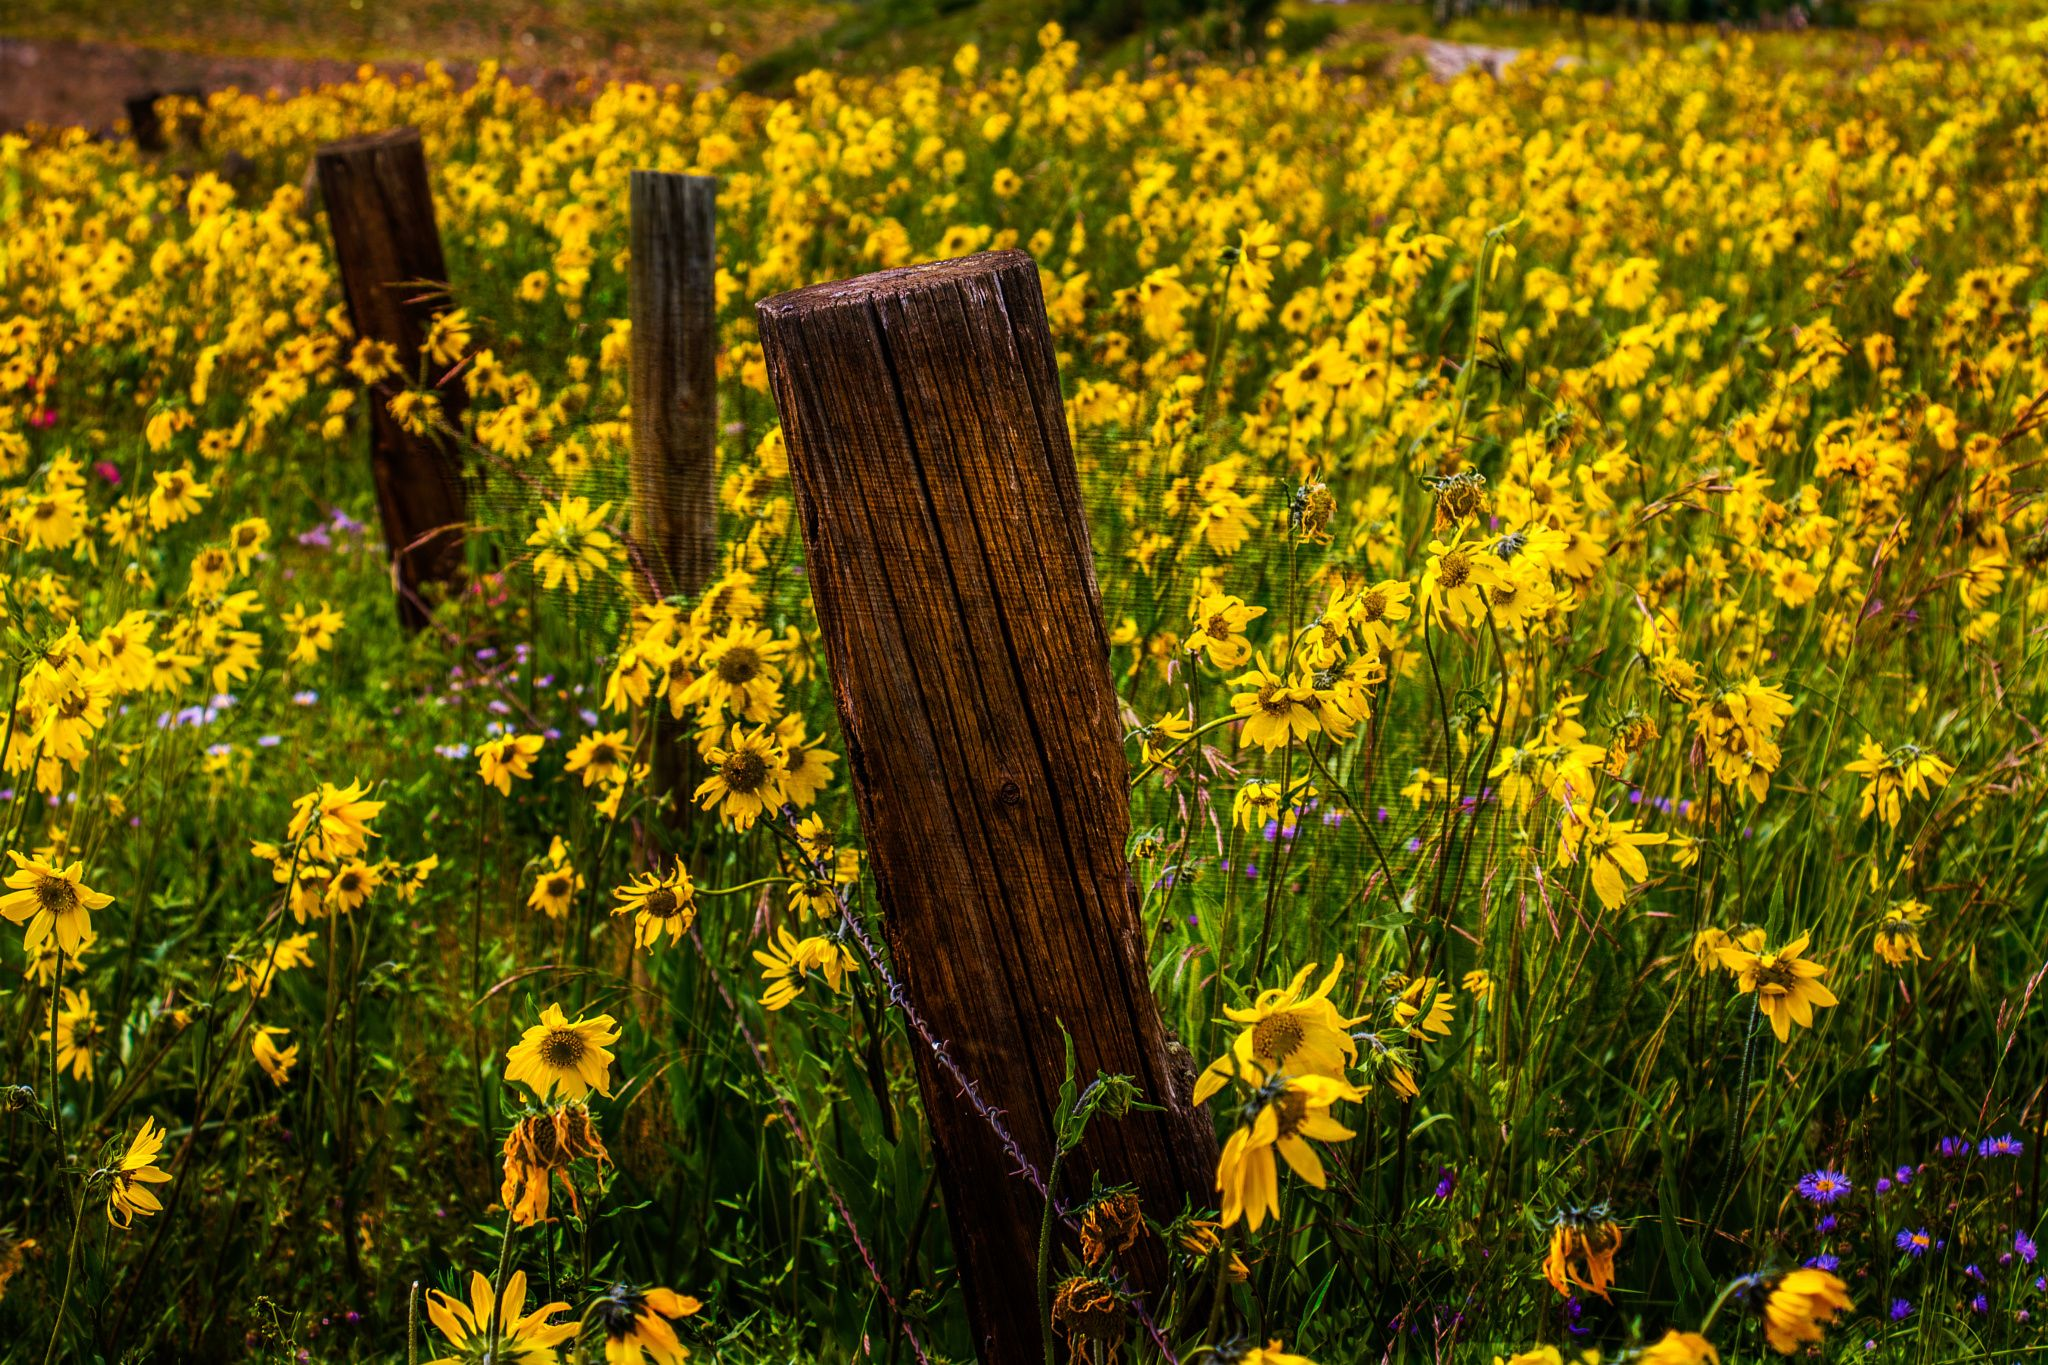 The Daisy Patch by Stephen K. Miller on 500px Daisy